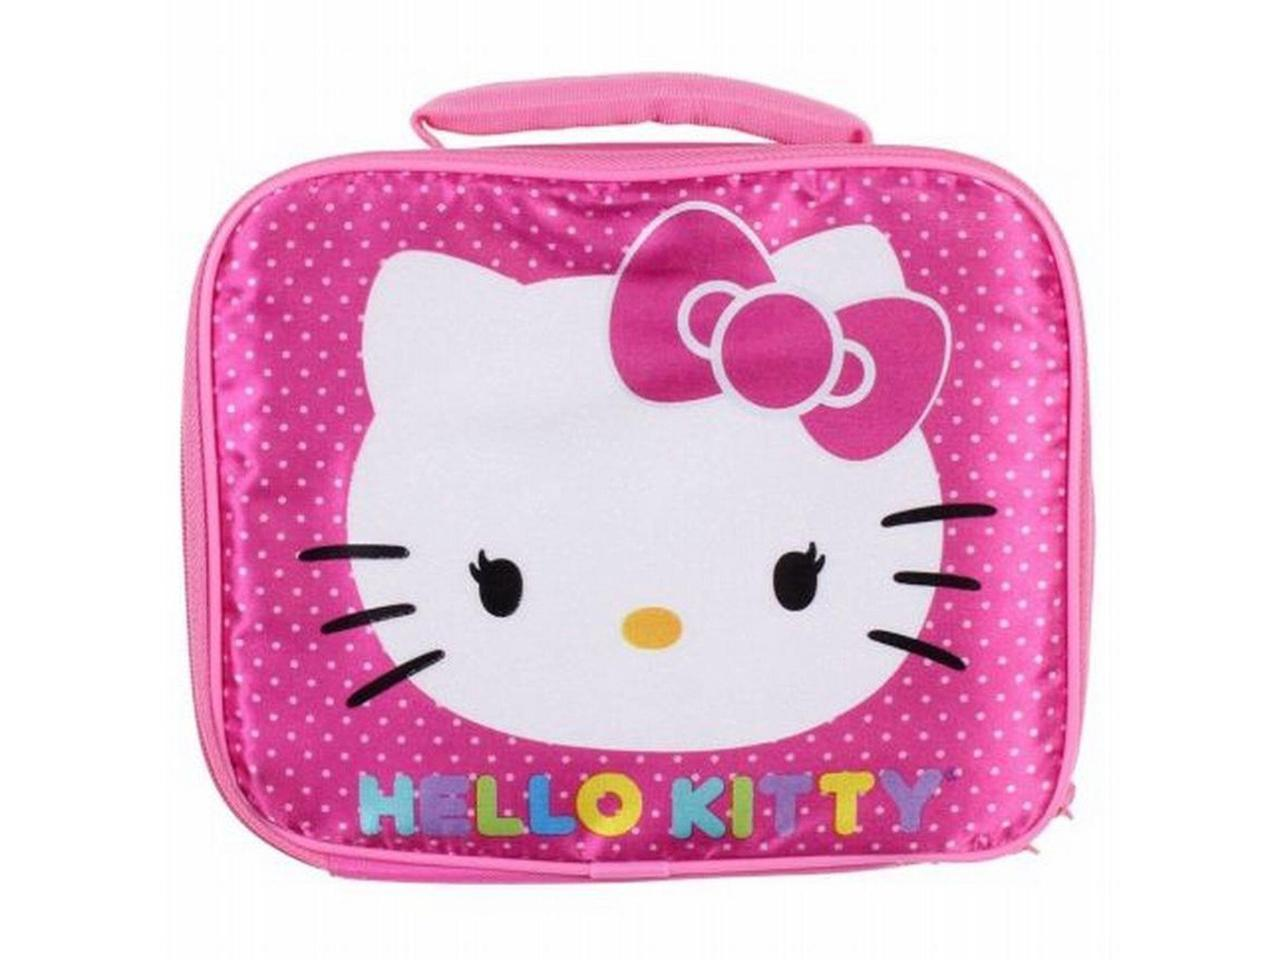 Hello Kitty Thermal Cooler Insulated Lunch Box Bag Travel